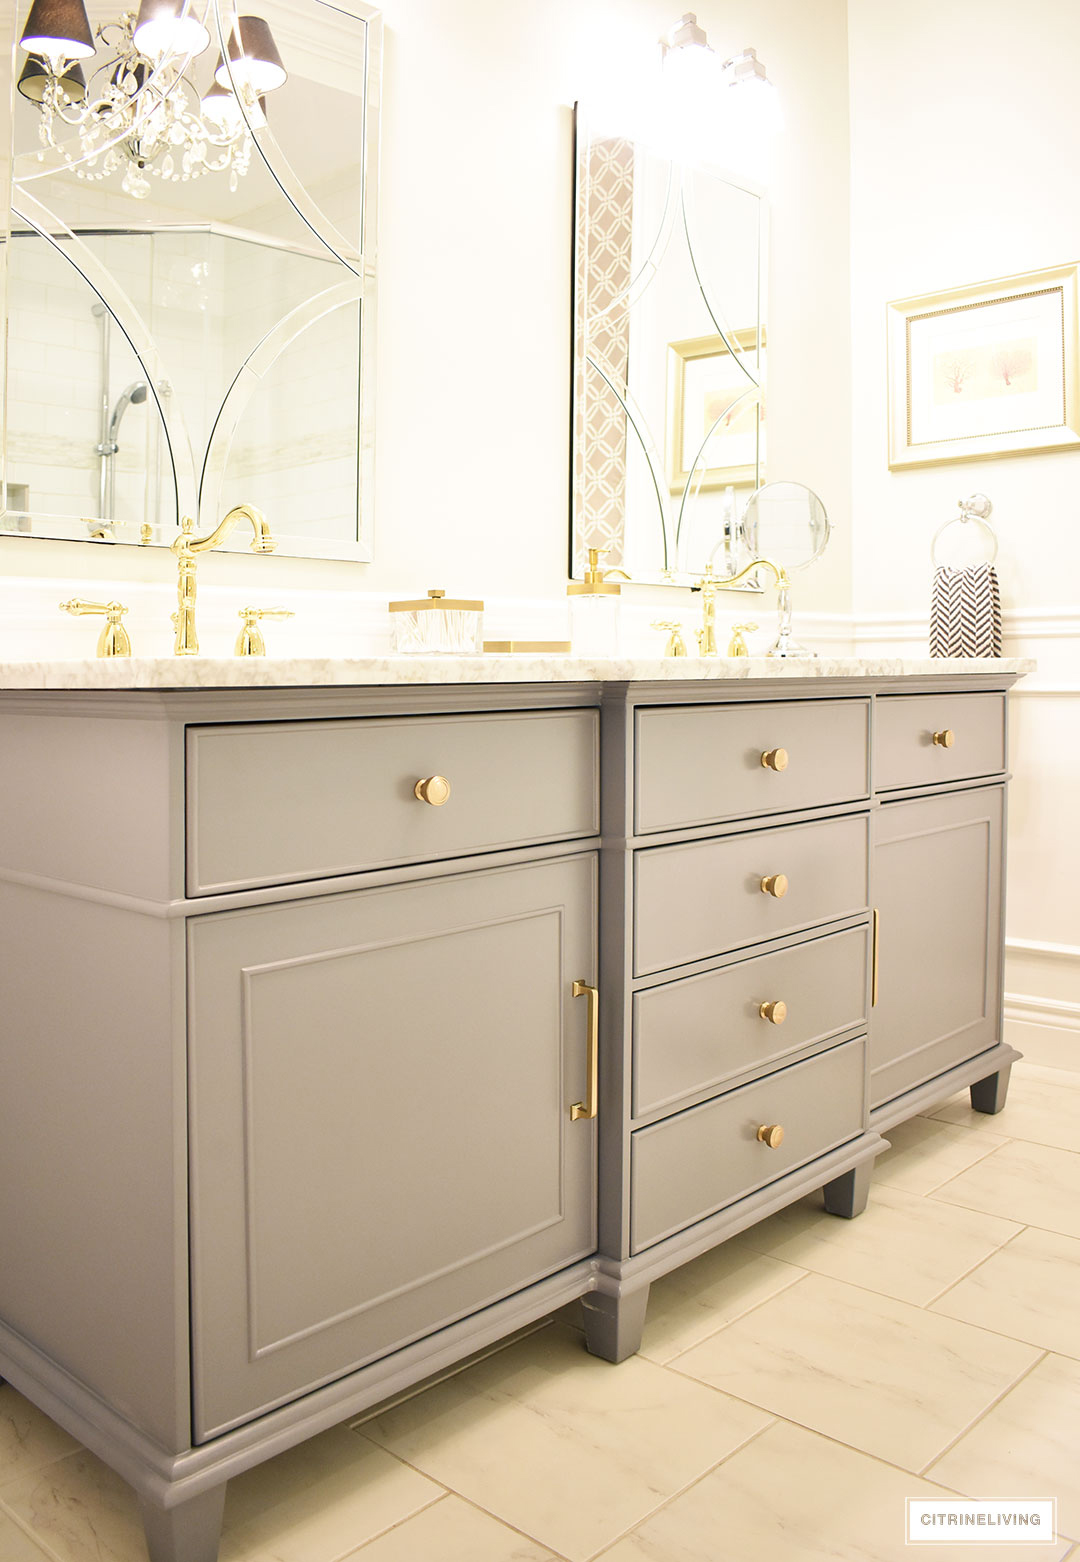 99d6c11b9 Gorgeous gray vanity with beautiful brass hardware and faucets - our master  bathroom makeover is underway